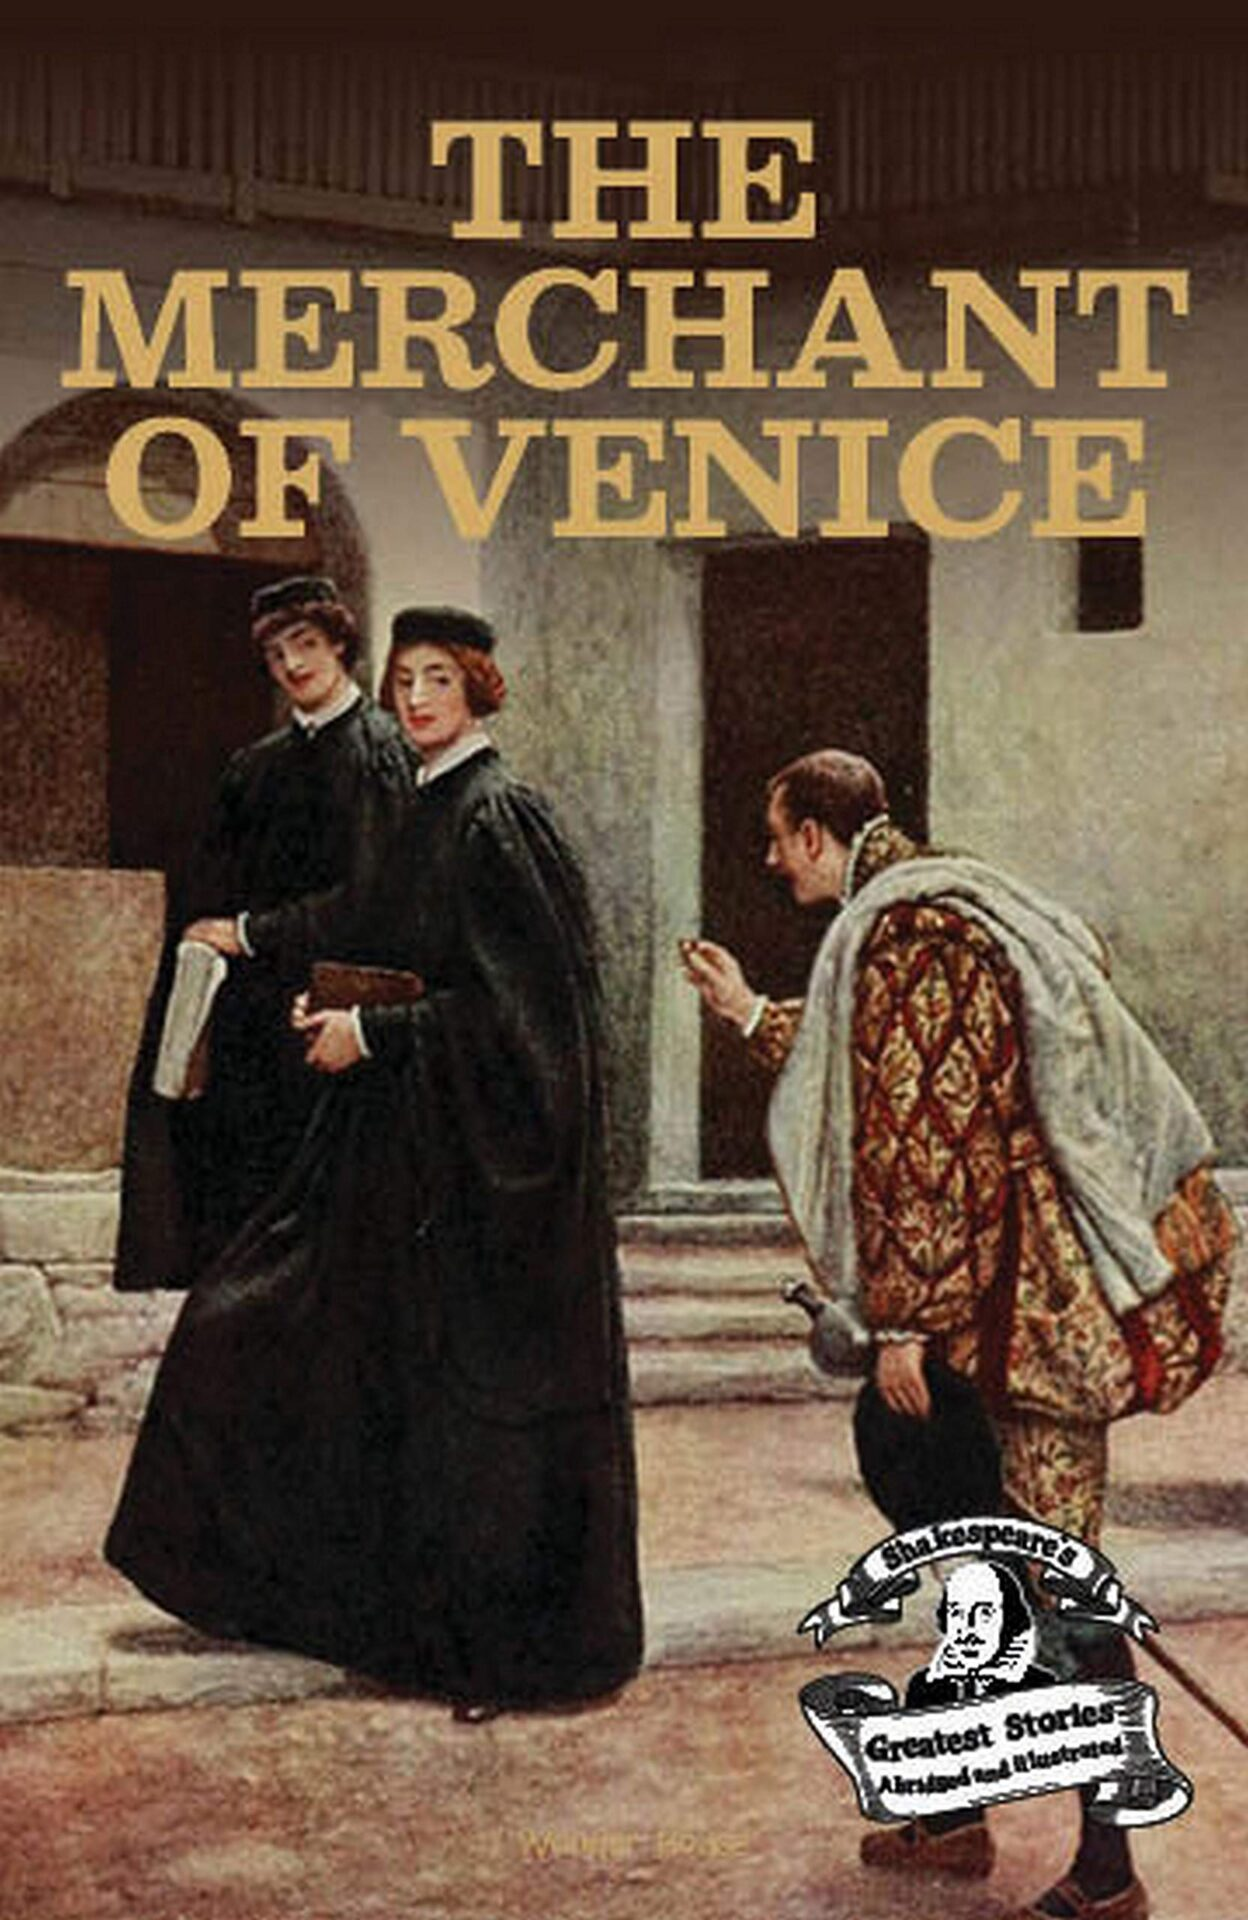 The Merchant of Venice book for 10 year old kids